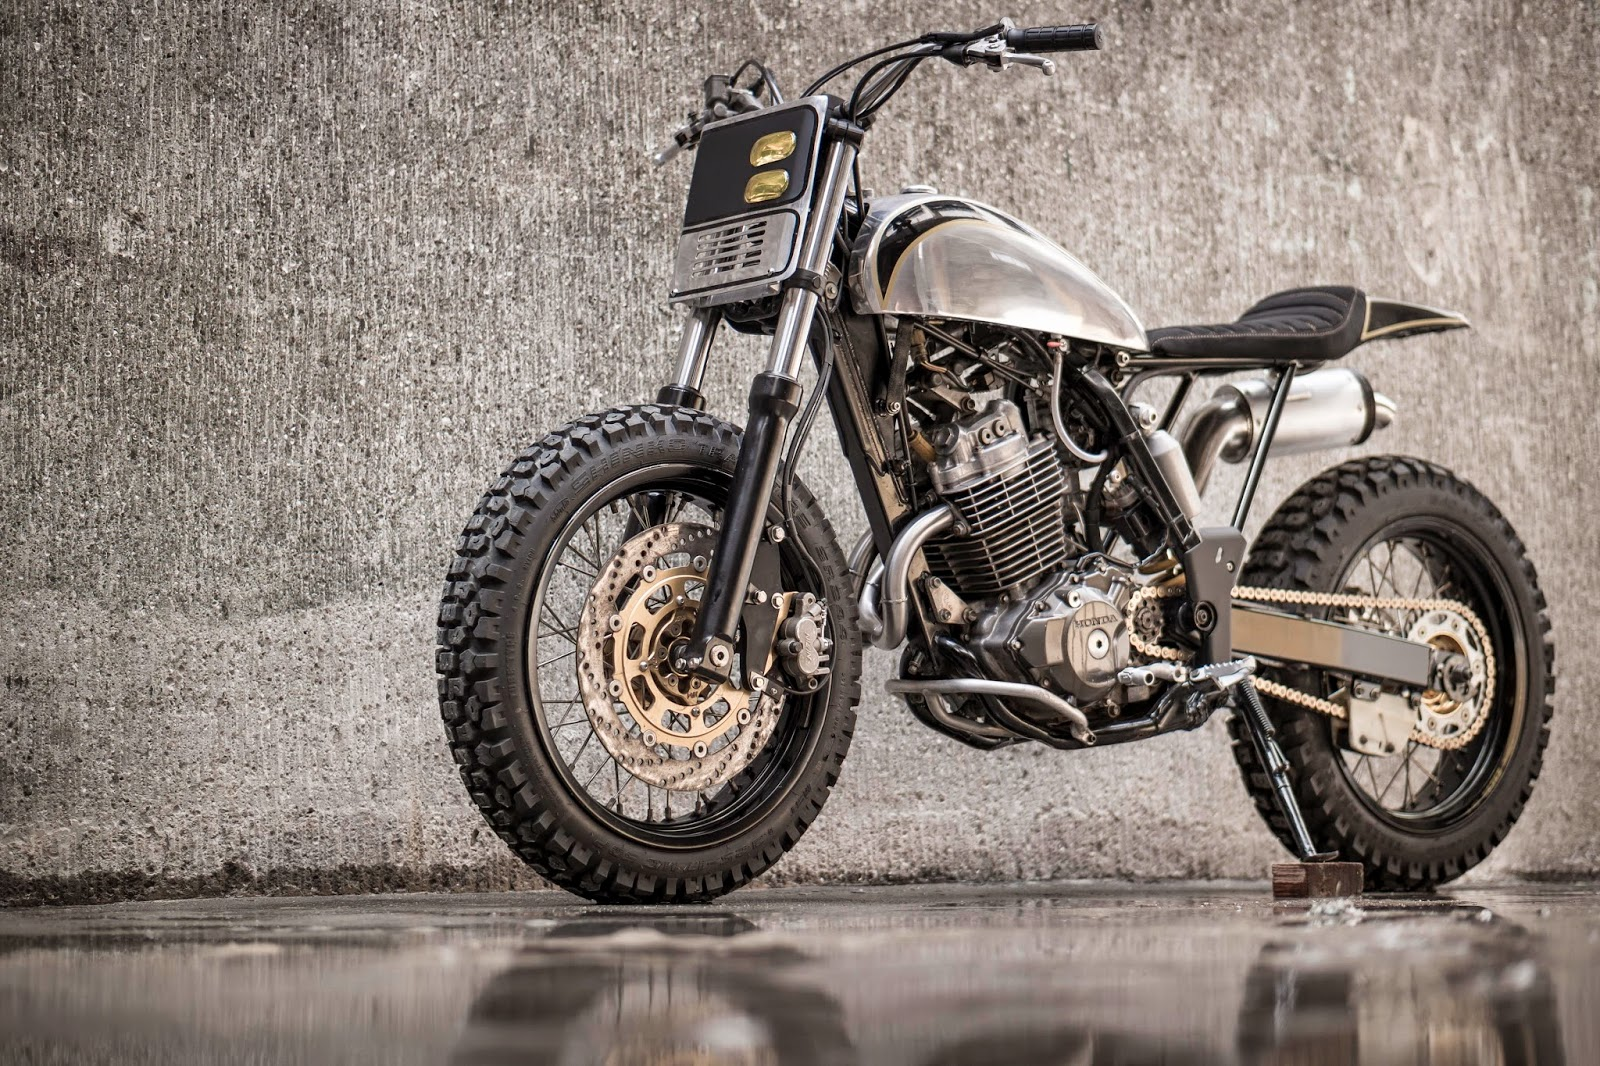 Building A Cafe Racer From A Dirt Bike